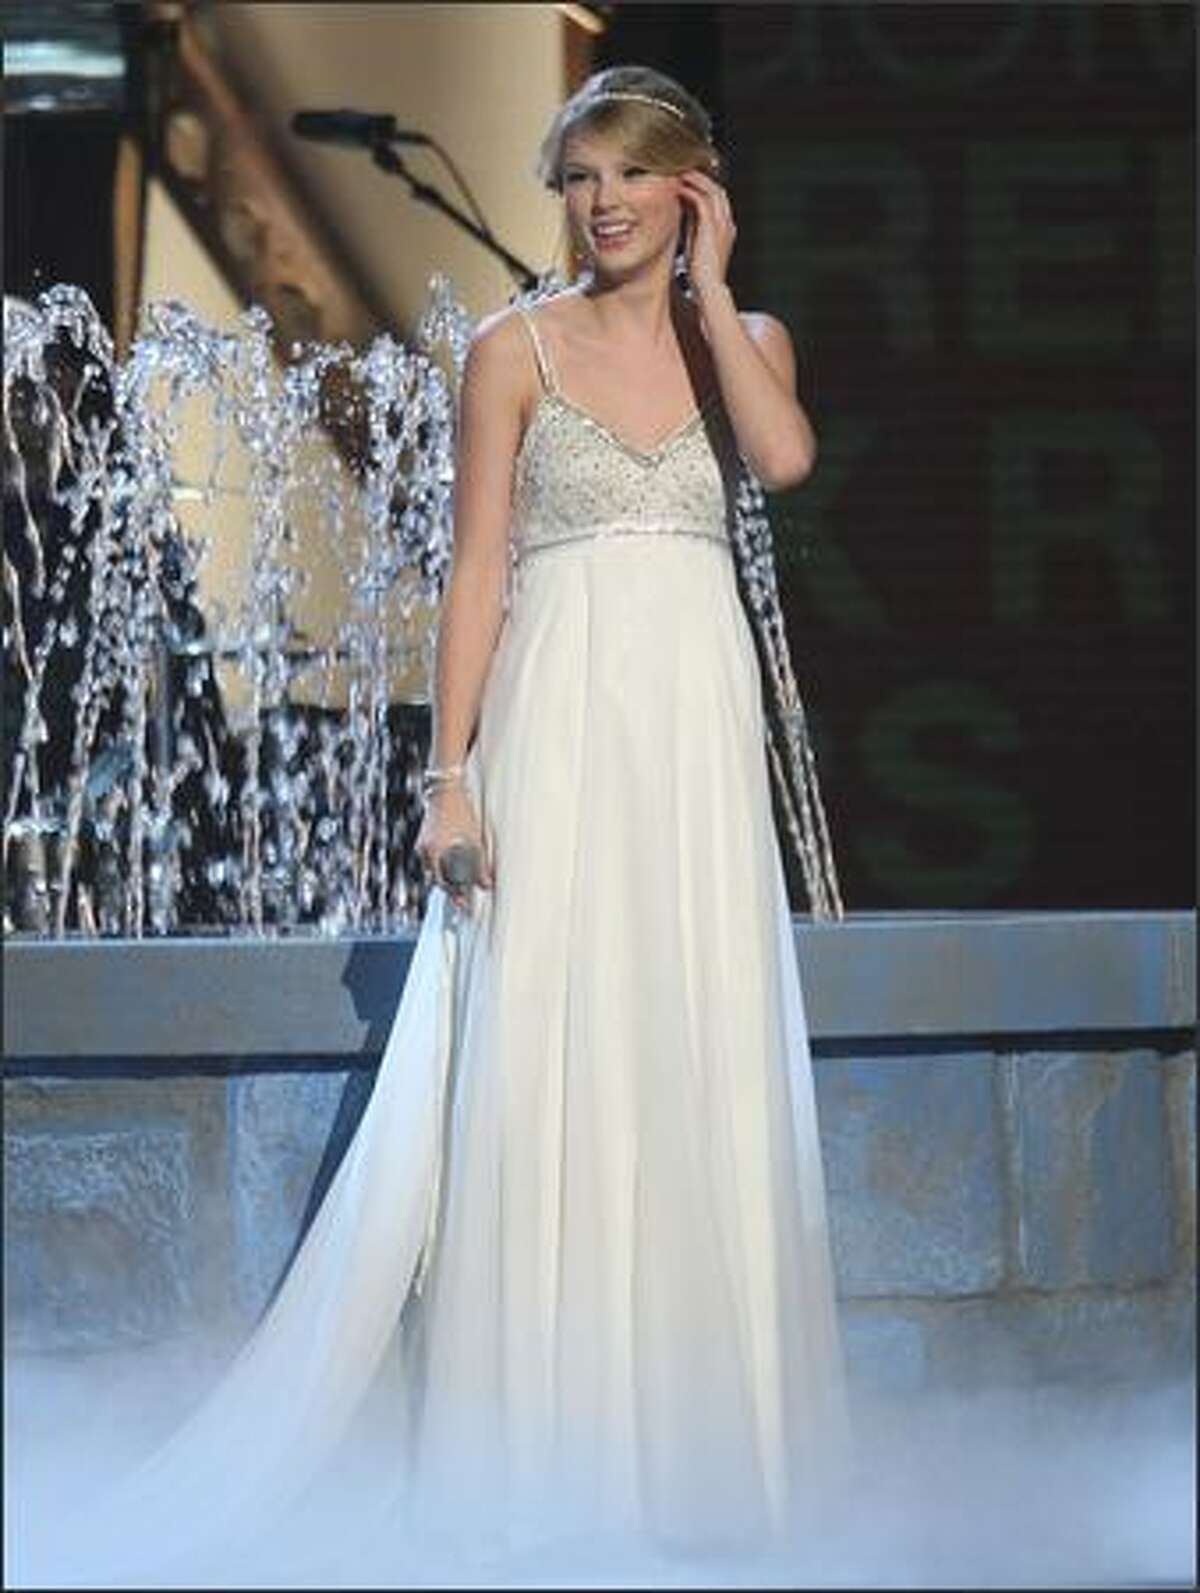 Singer Taylor Swift performs on stage.